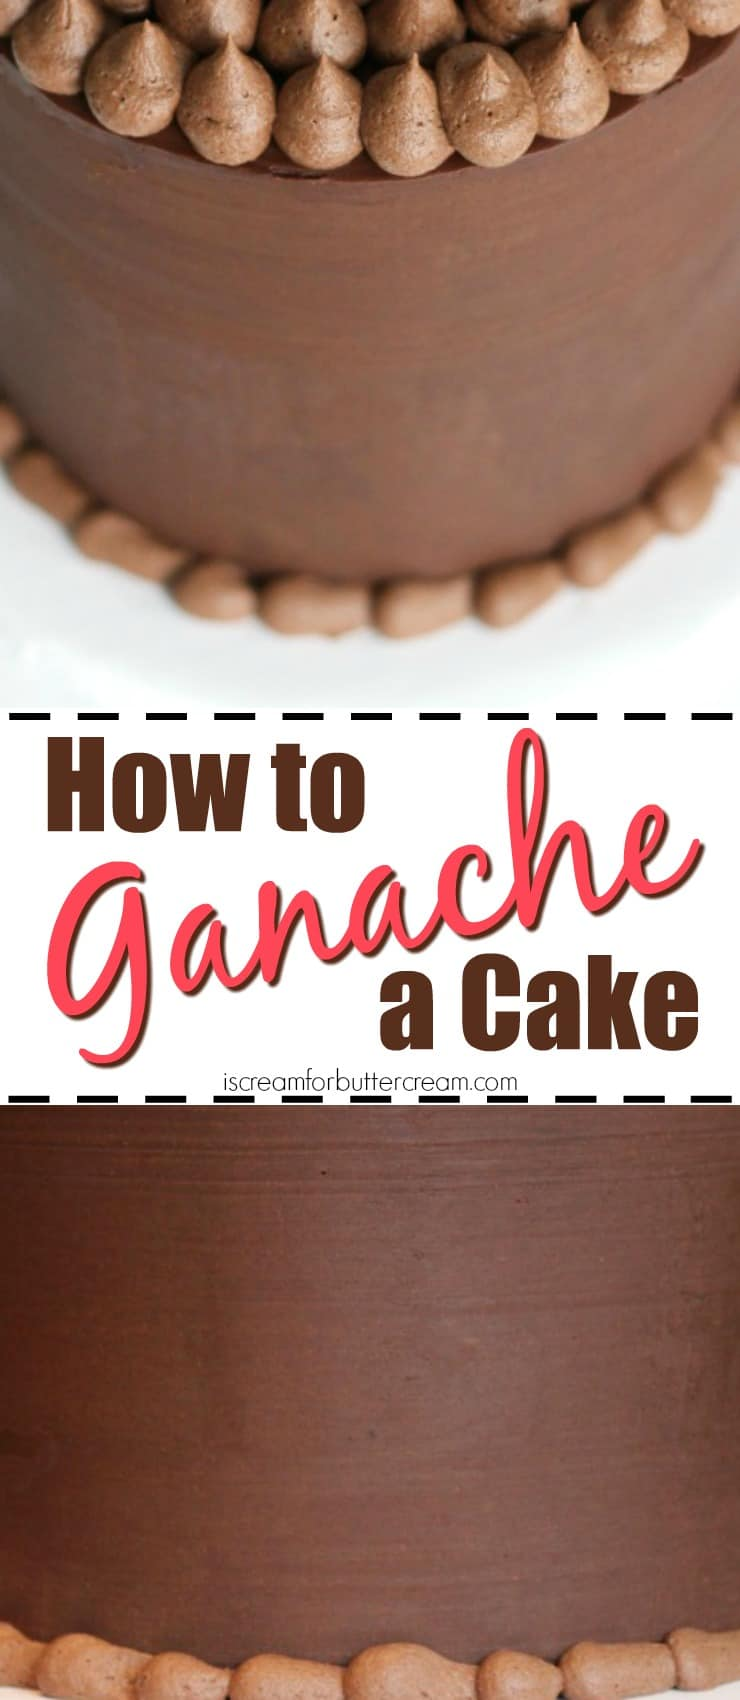 How to Ganache a Cake Pinterest Graphic